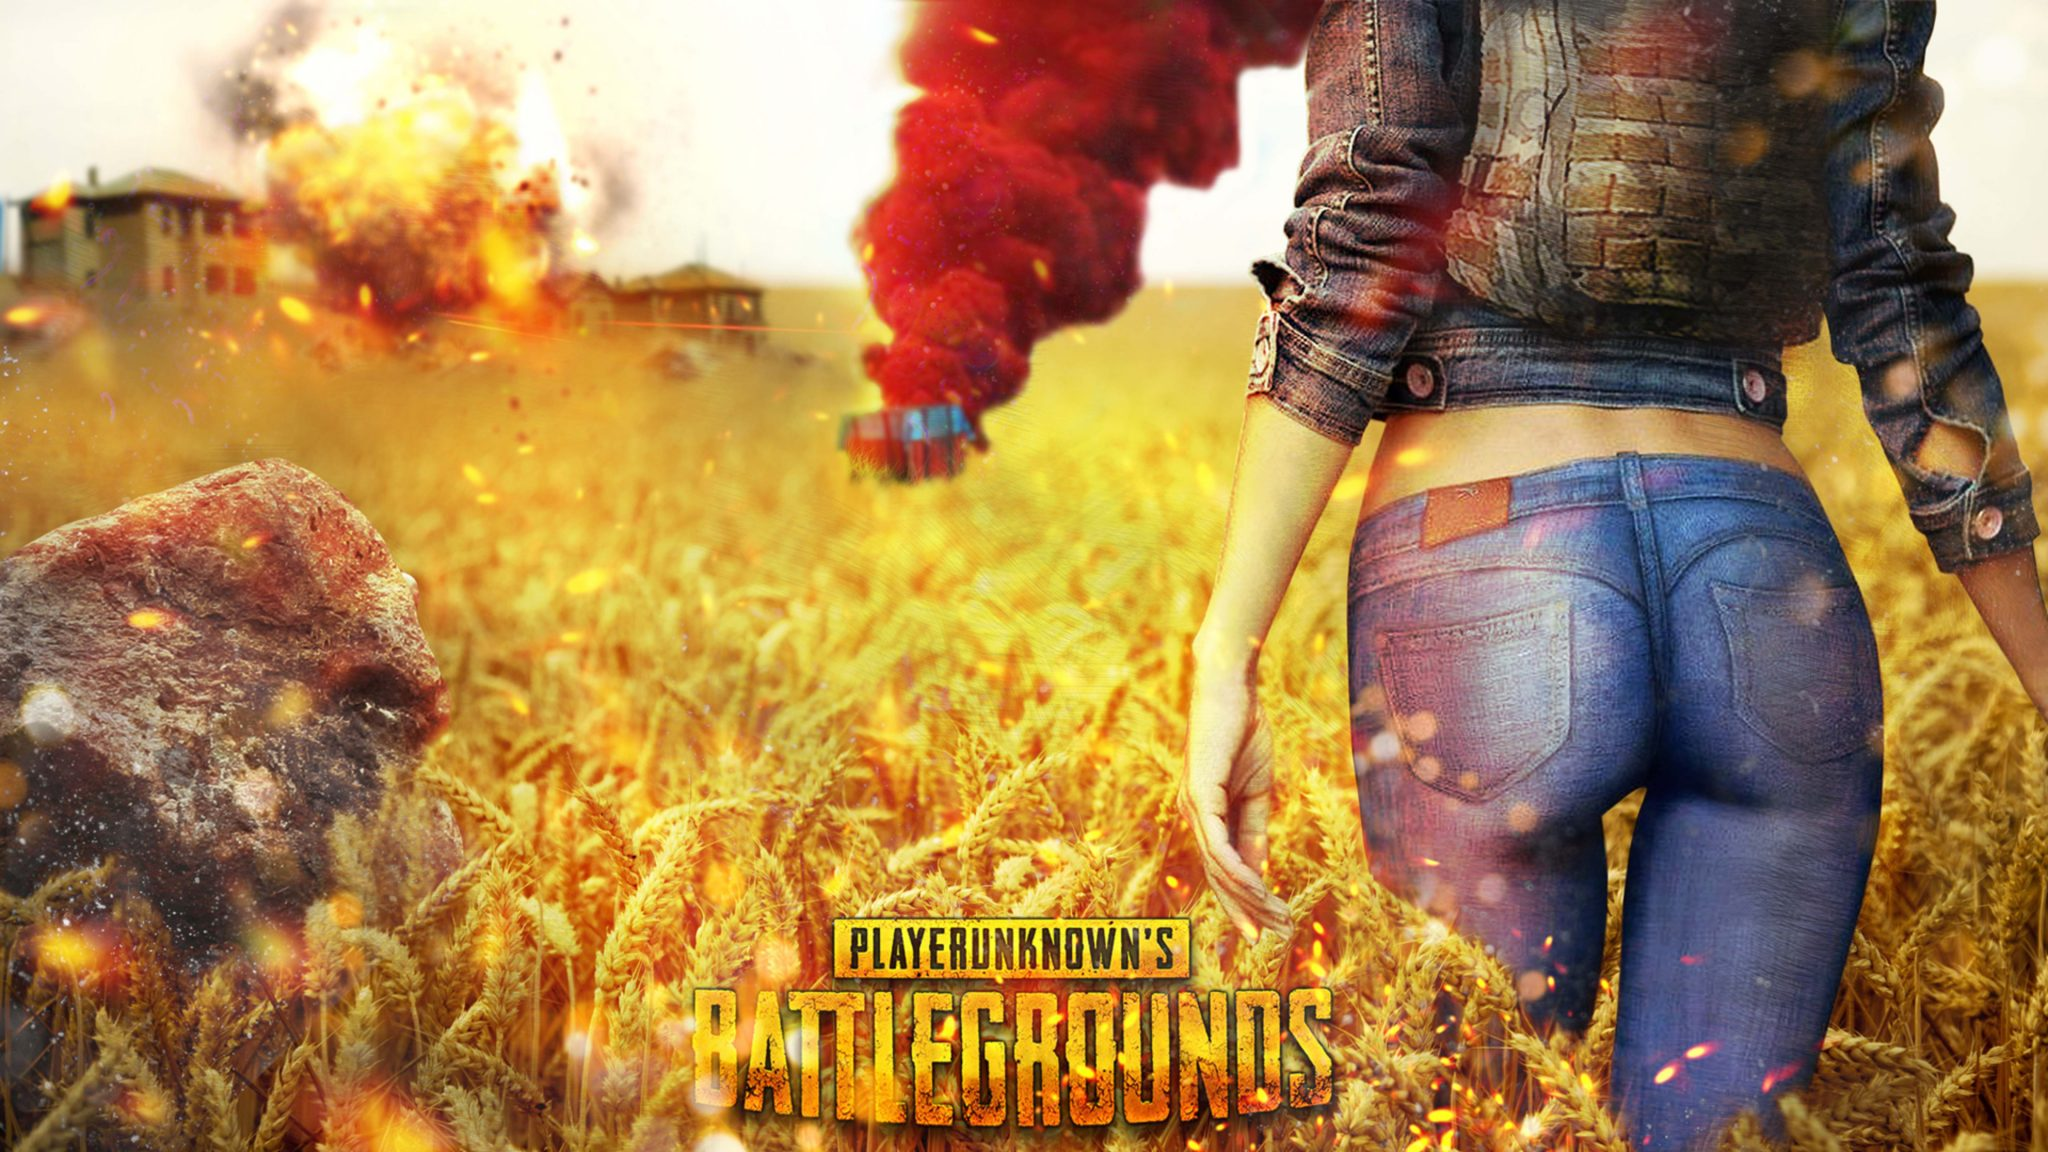 Download Pubg Mobile Wallpapers 720p 1080p 4k: Playerunknowns Battlegrounds PUBG Cover 4K Wallpaper